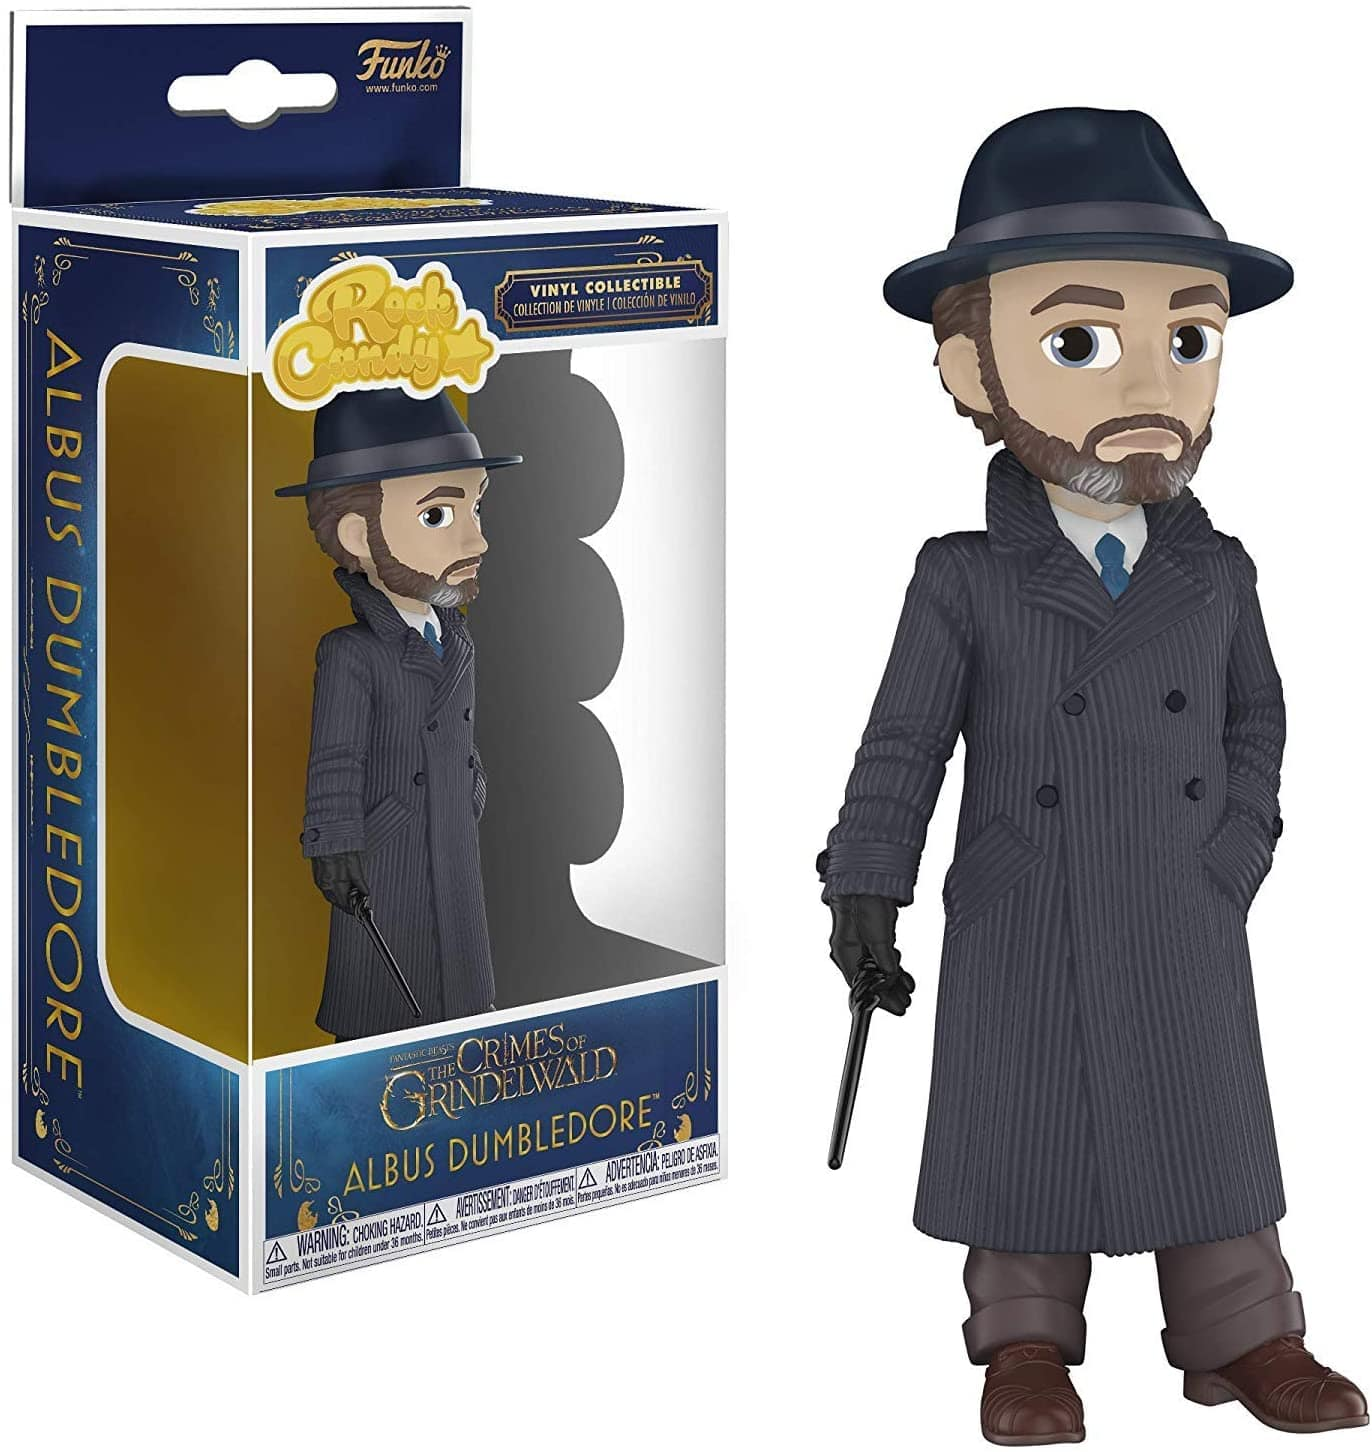 Funko Rock Candy: Fantastic Beasts 2 - Dumbledore $4.30 + Free Shipping w/ Amazon Prime or Orders $25+